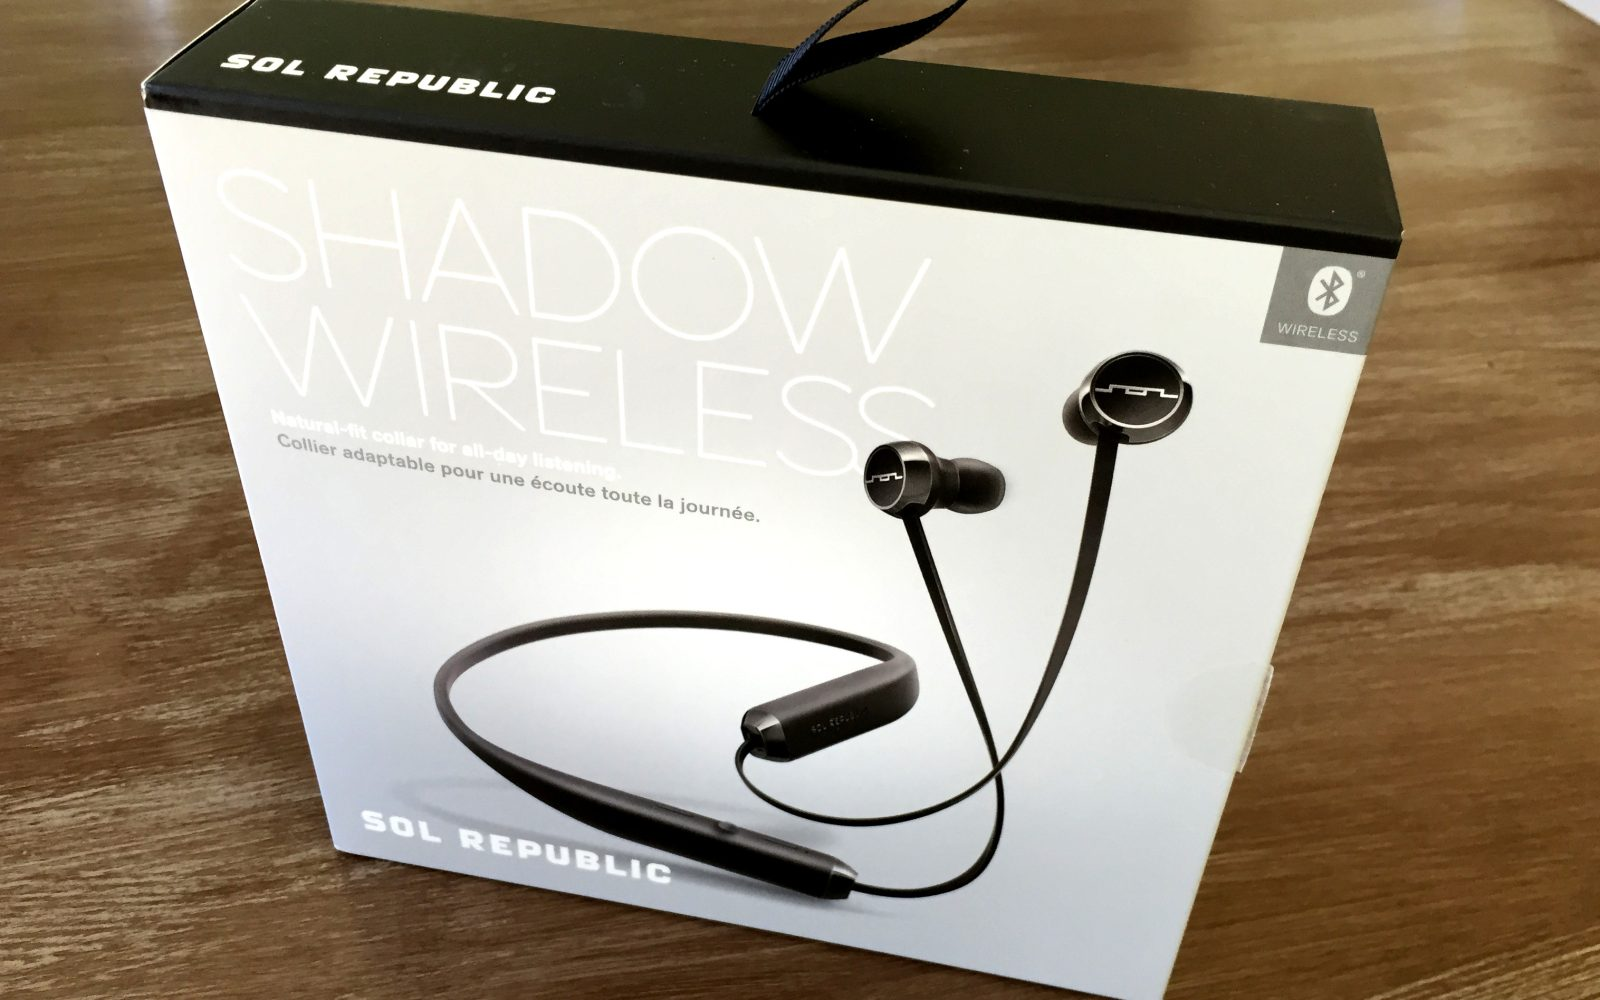 084b7130b83 Review: SOL REPUBLIC's Shadow wireless headphones w/ Bluetooth 4.0 offer an  upgraded audio experience, $100 giveaway